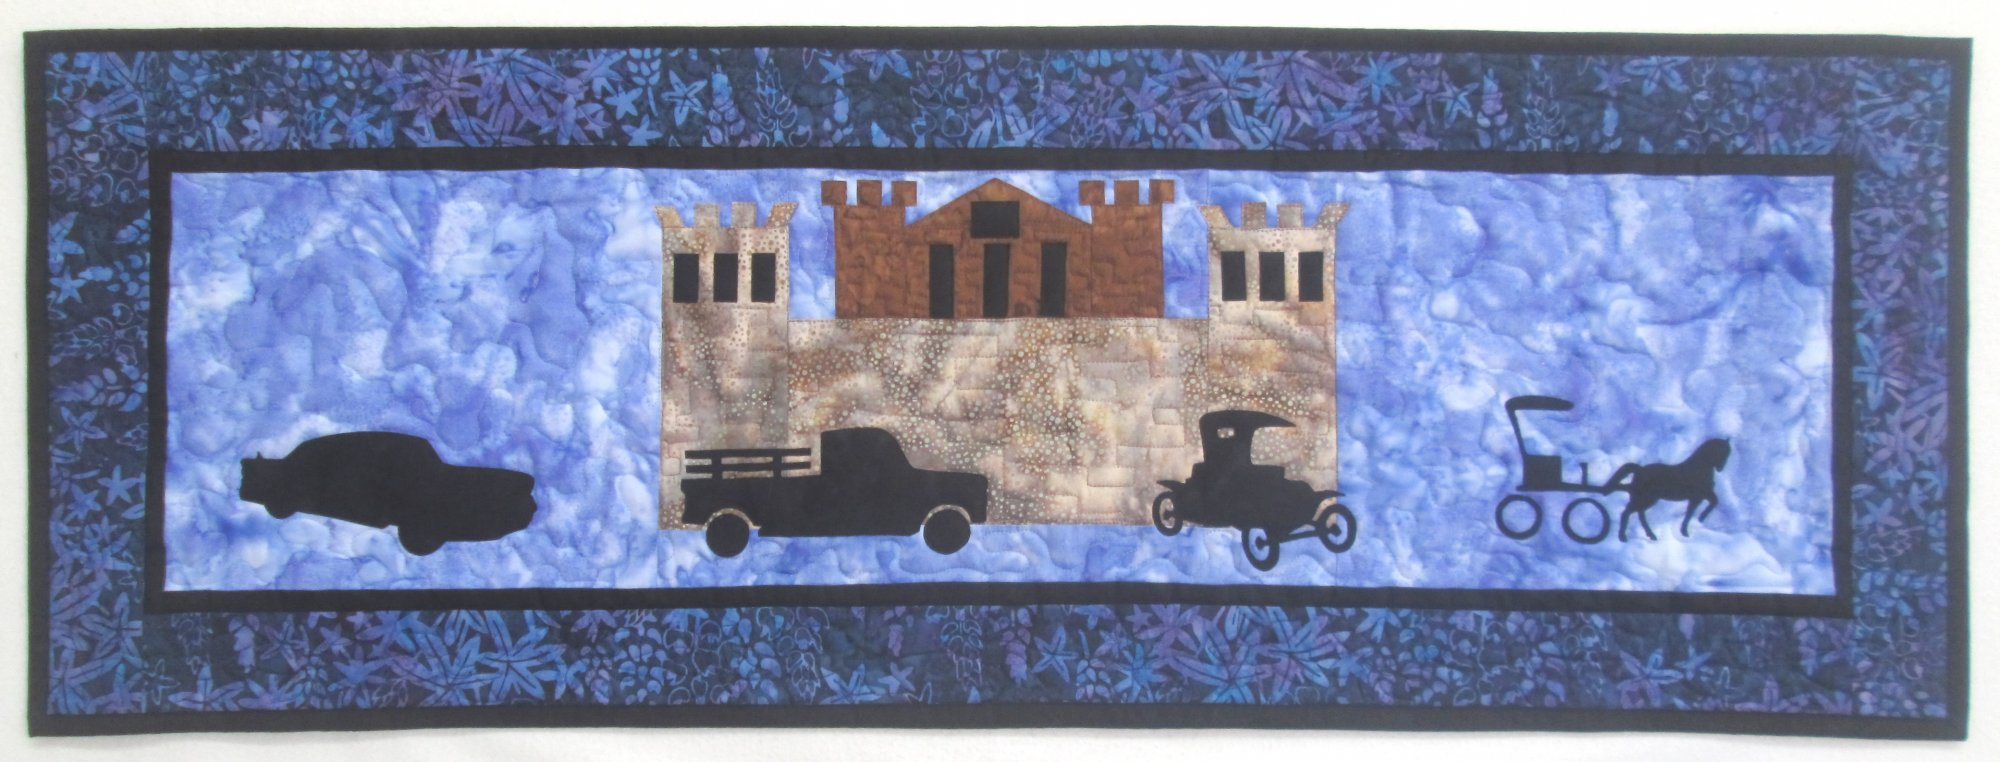 2017 Row by Row On the Go In Deer Lodge MT Wall Hanging Kit includes borders binding & pattern